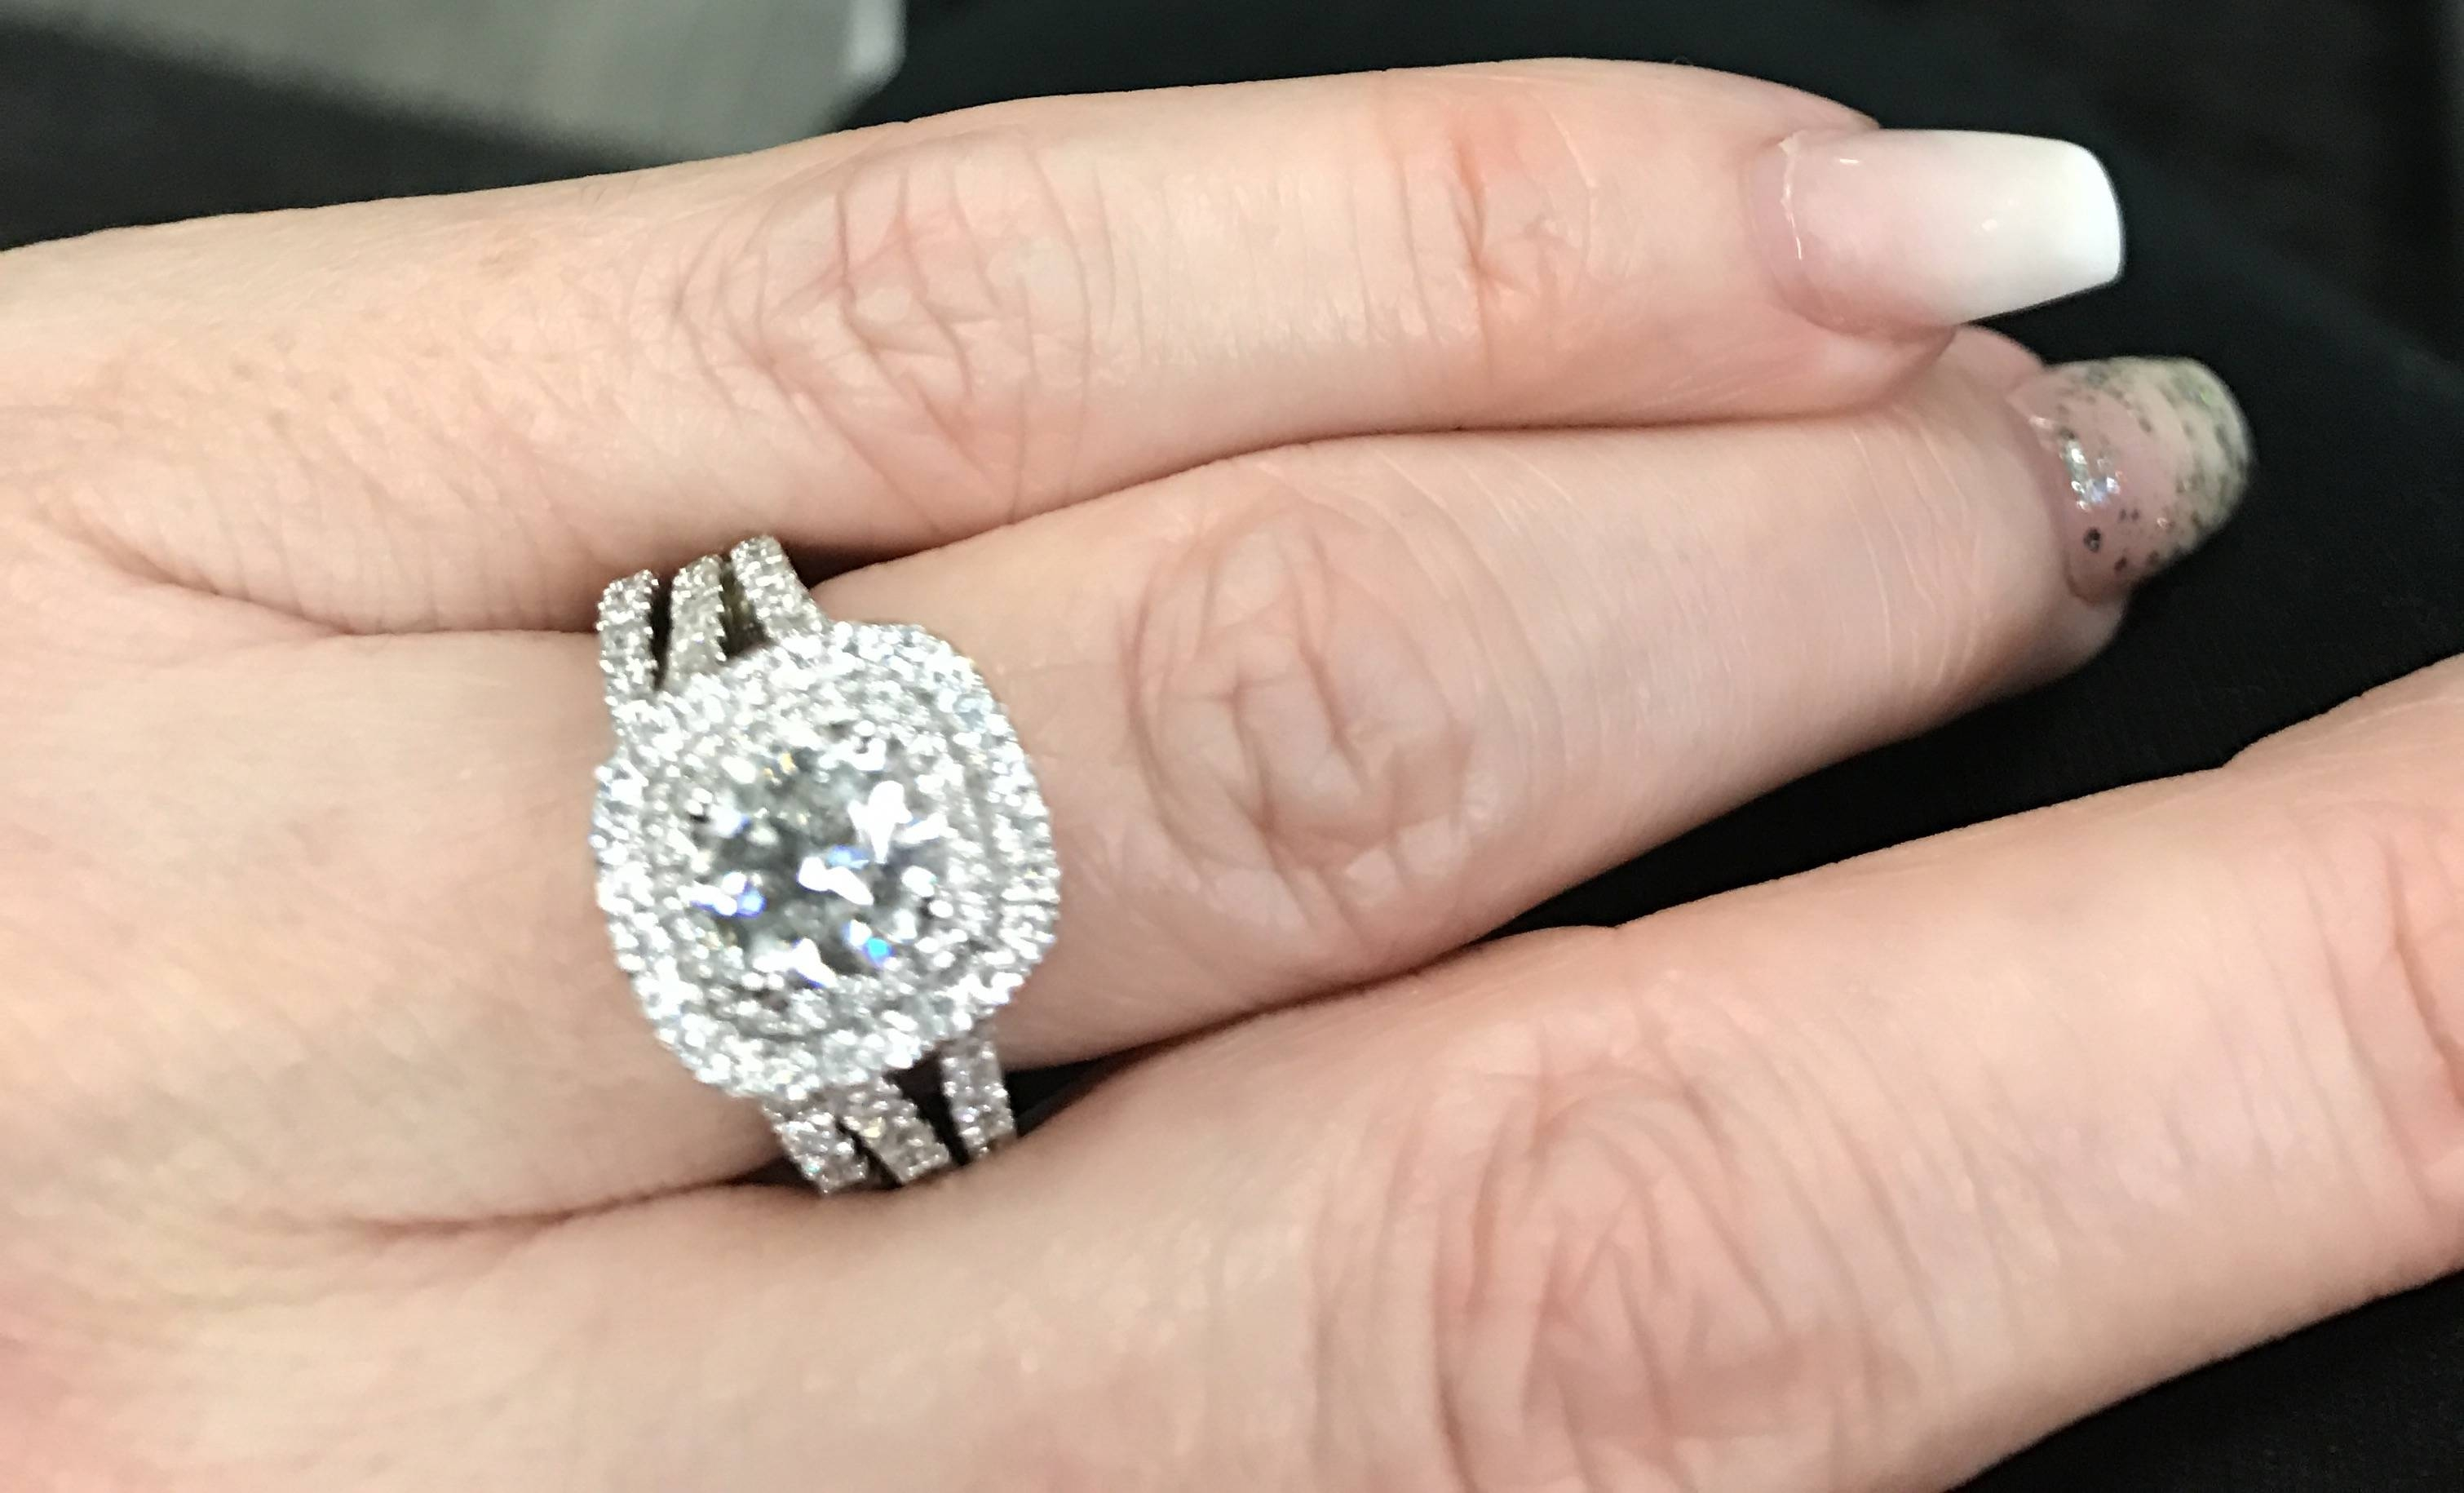 Show Me Your Halo Engagement Ring With Your Wedding Band/ring Intended For Best Wedding Bands For Halo Engagement Rings (View 9 of 15)